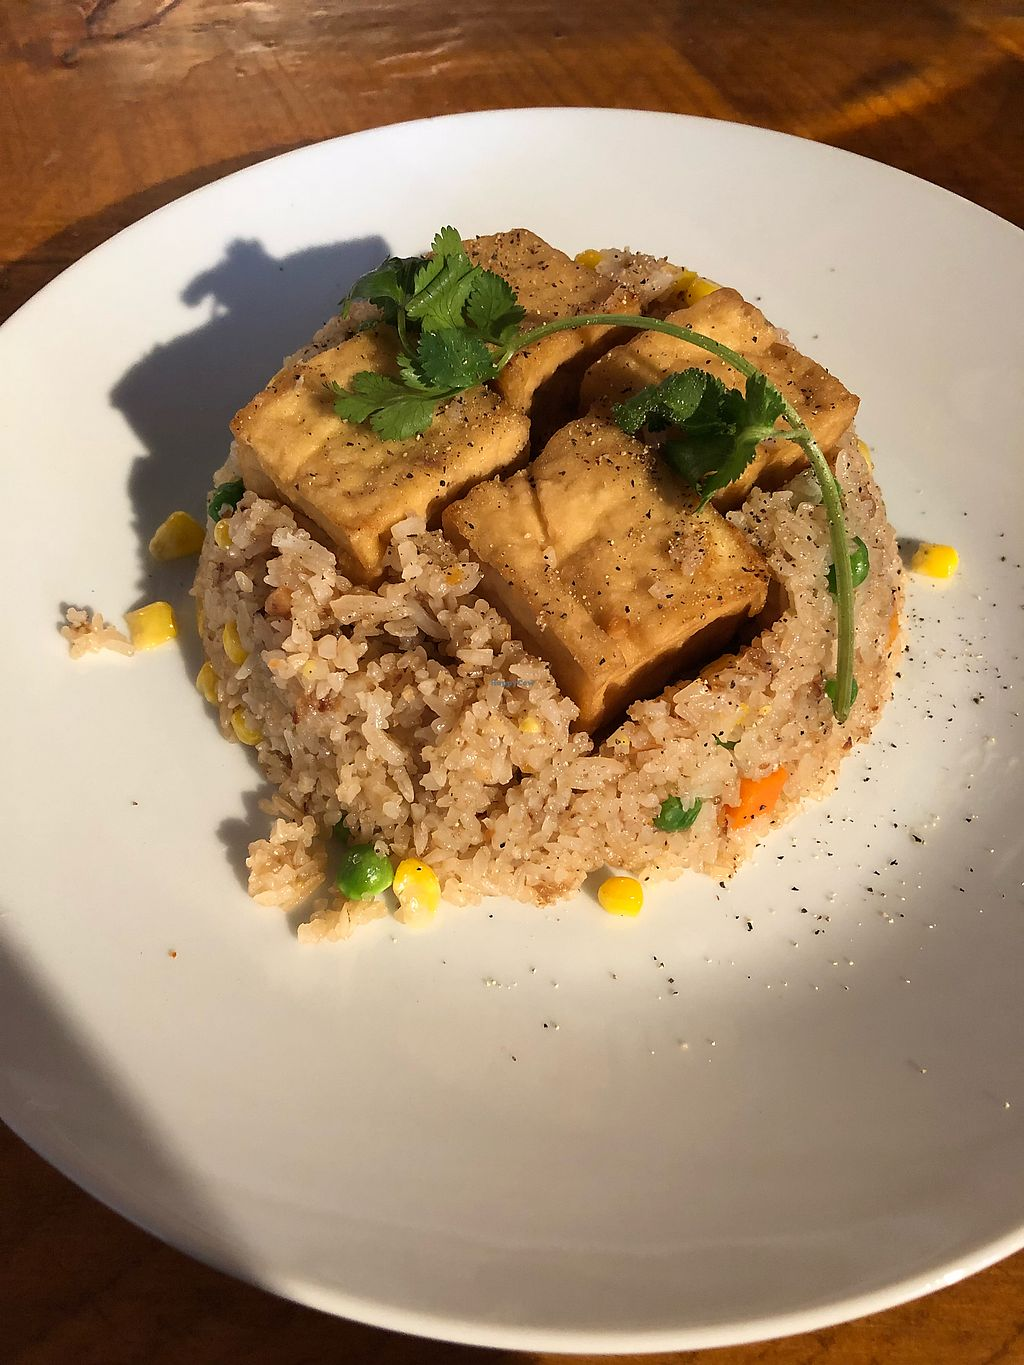 "Photo of Peak of Asia  by <a href=""/members/profile/AshleyJoNix"">AshleyJoNix</a> <br/>Tofu fried rice no egg <br/> January 19, 2018  - <a href='/contact/abuse/image/108719/348412'>Report</a>"